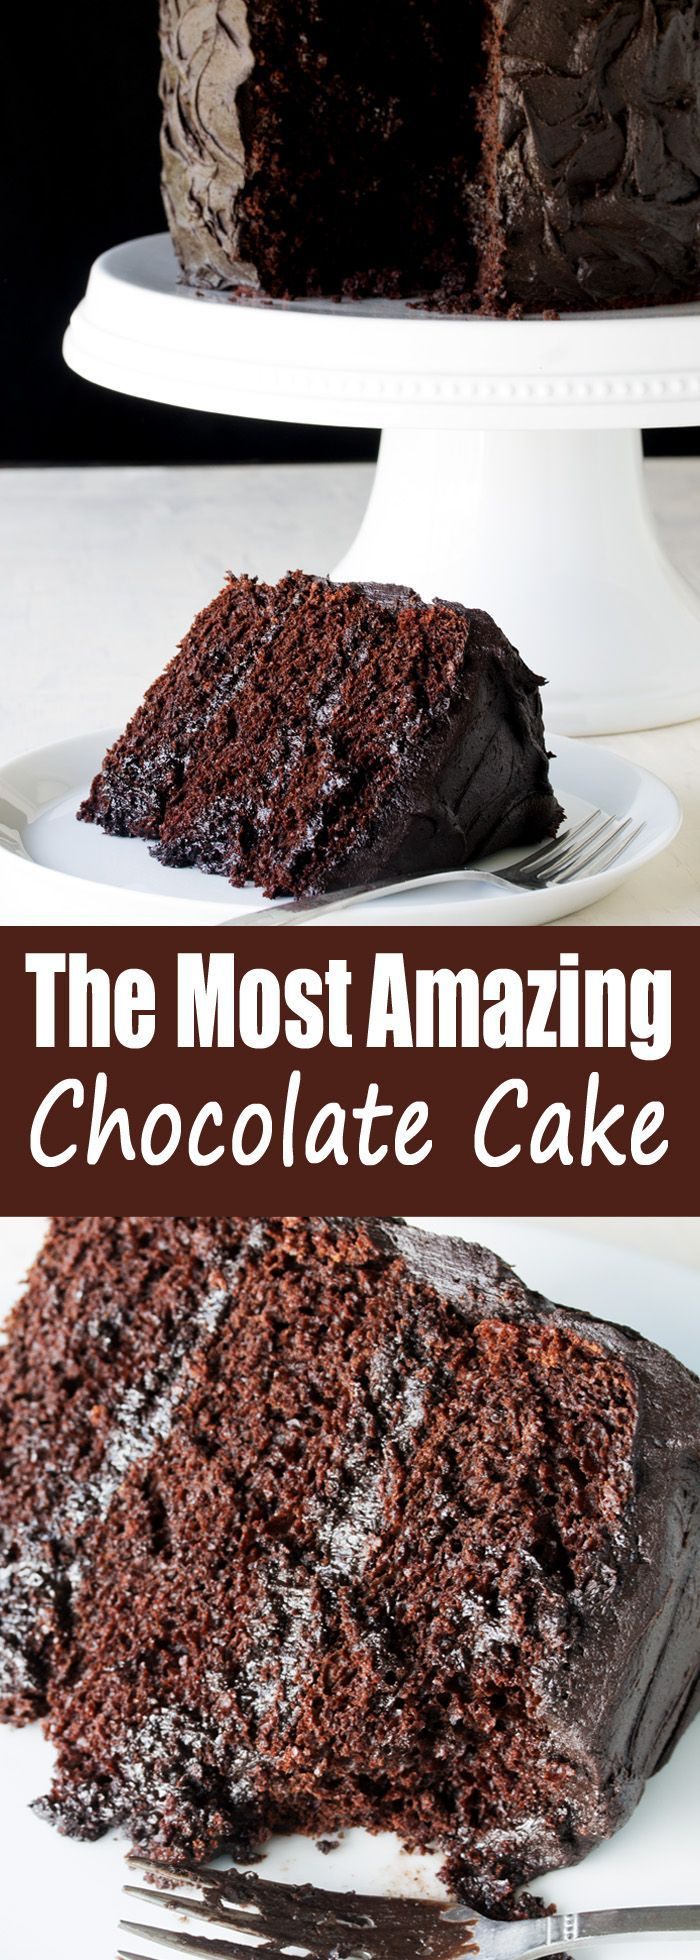 The Most Amazing Chocolate Cake is here. Moist, chocolaty perfection. This is the chocolate cake you've been dreaming of!